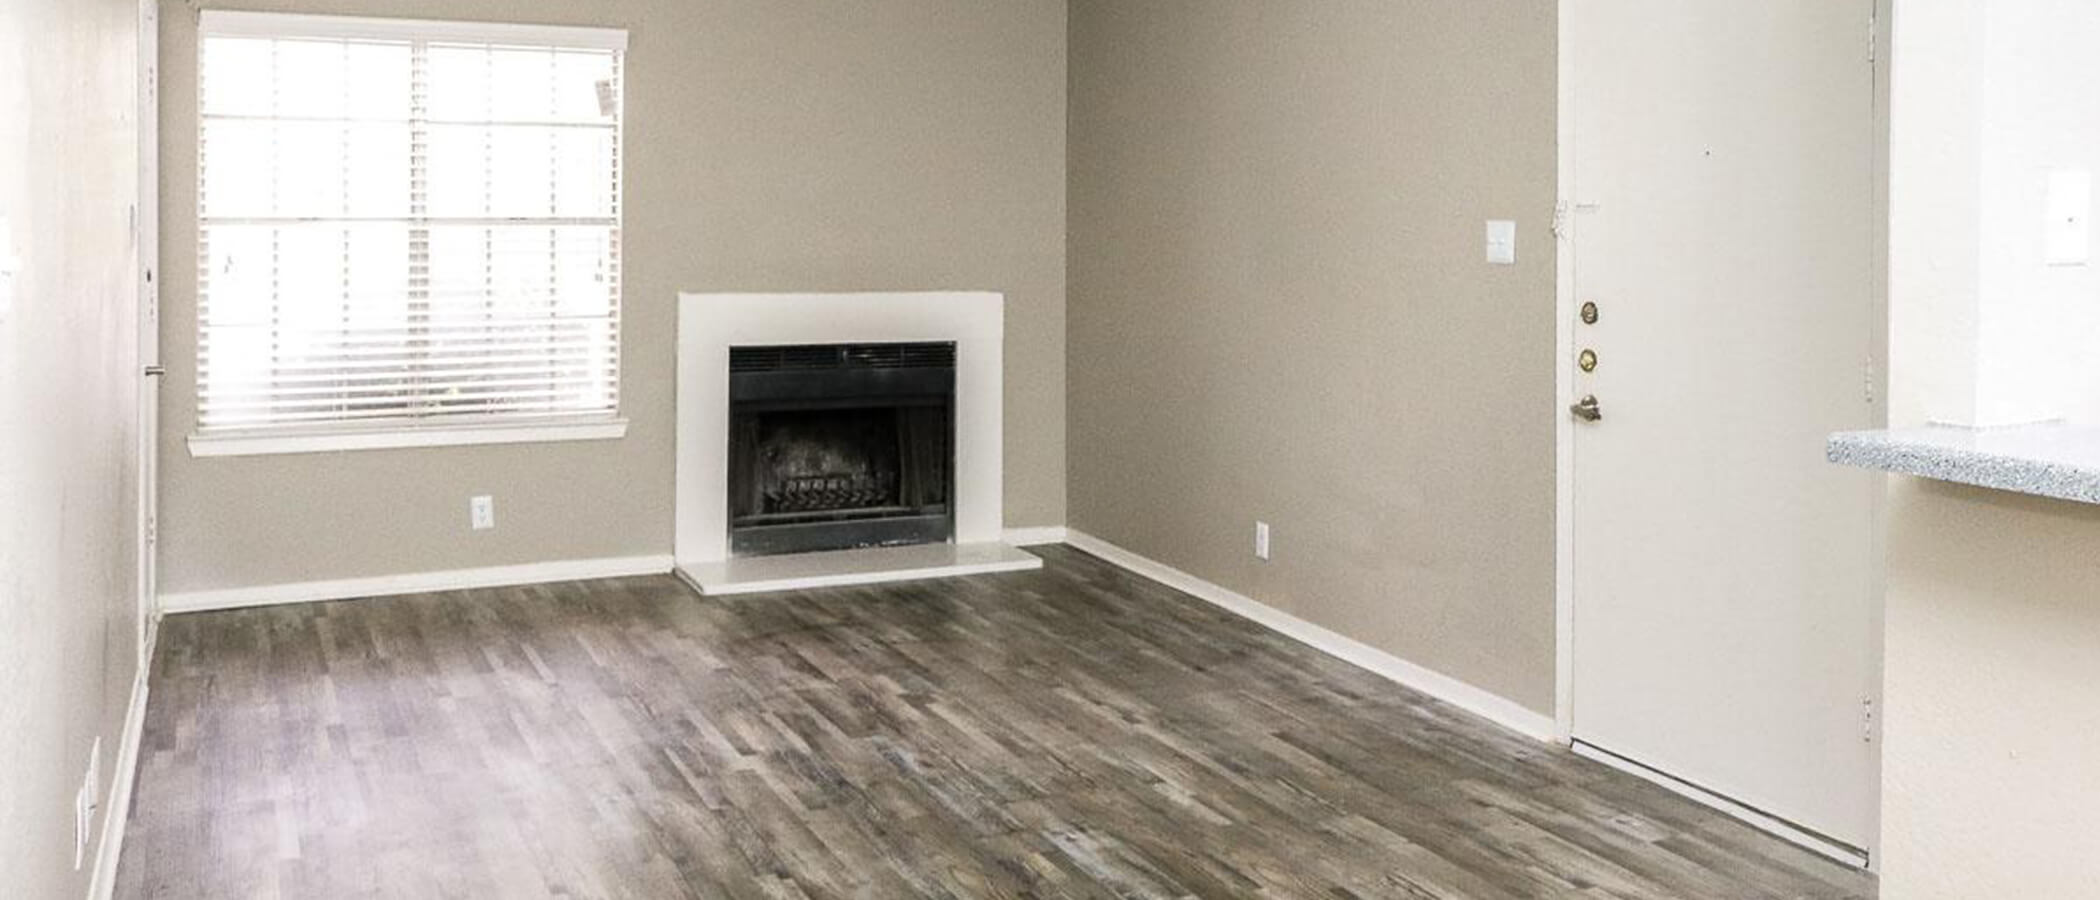 Riverwood Apartments slideshow image 3